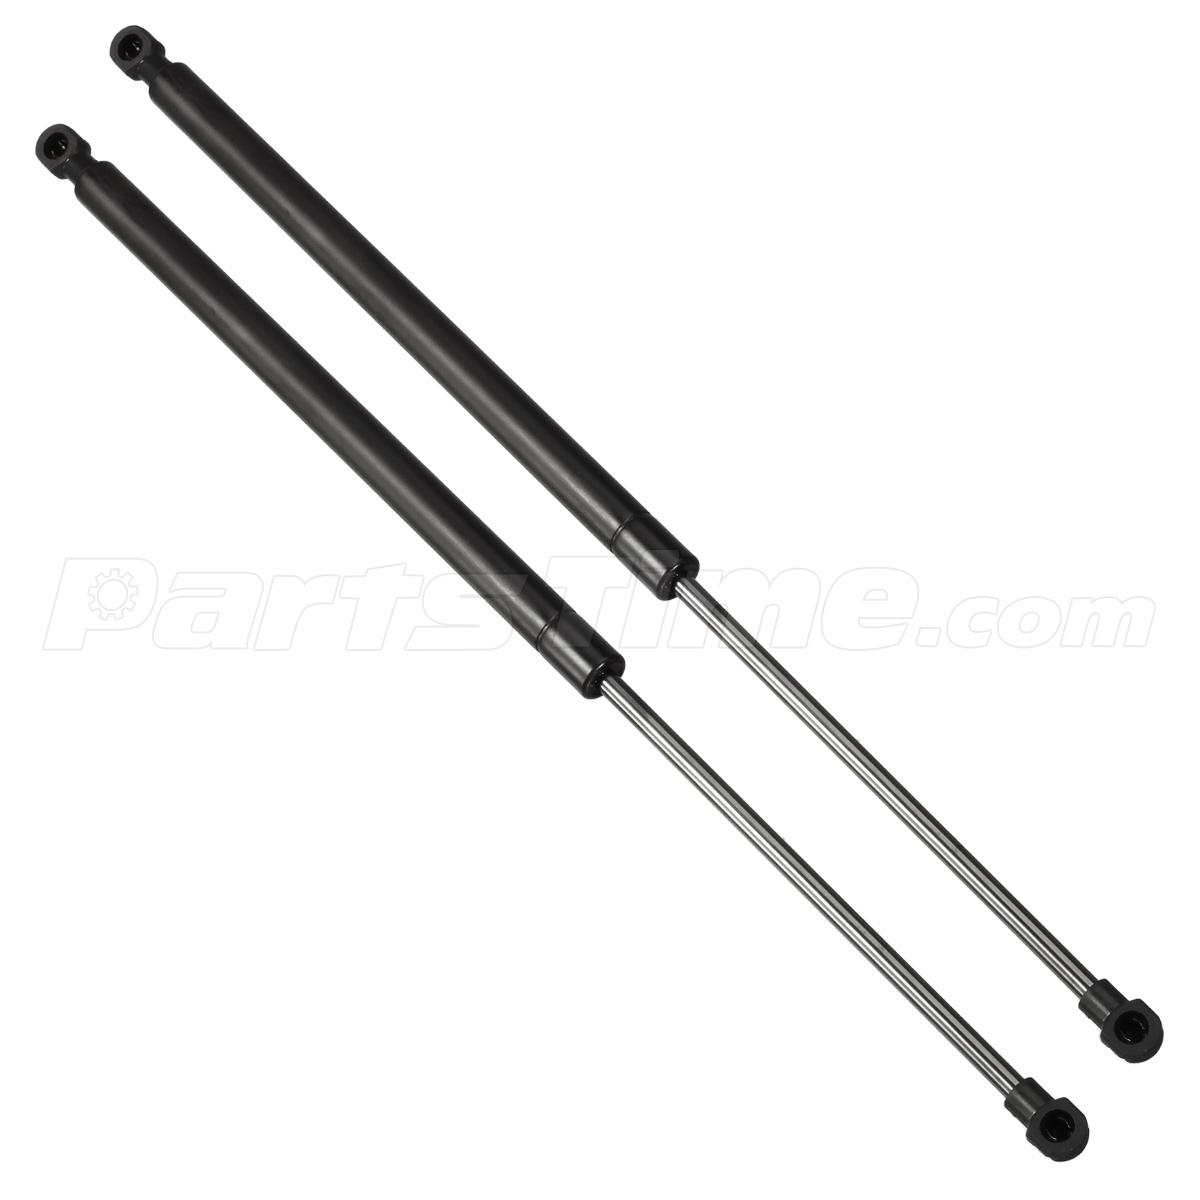 qty 2 hood pm1049 lift supports prop rod shock gas spring